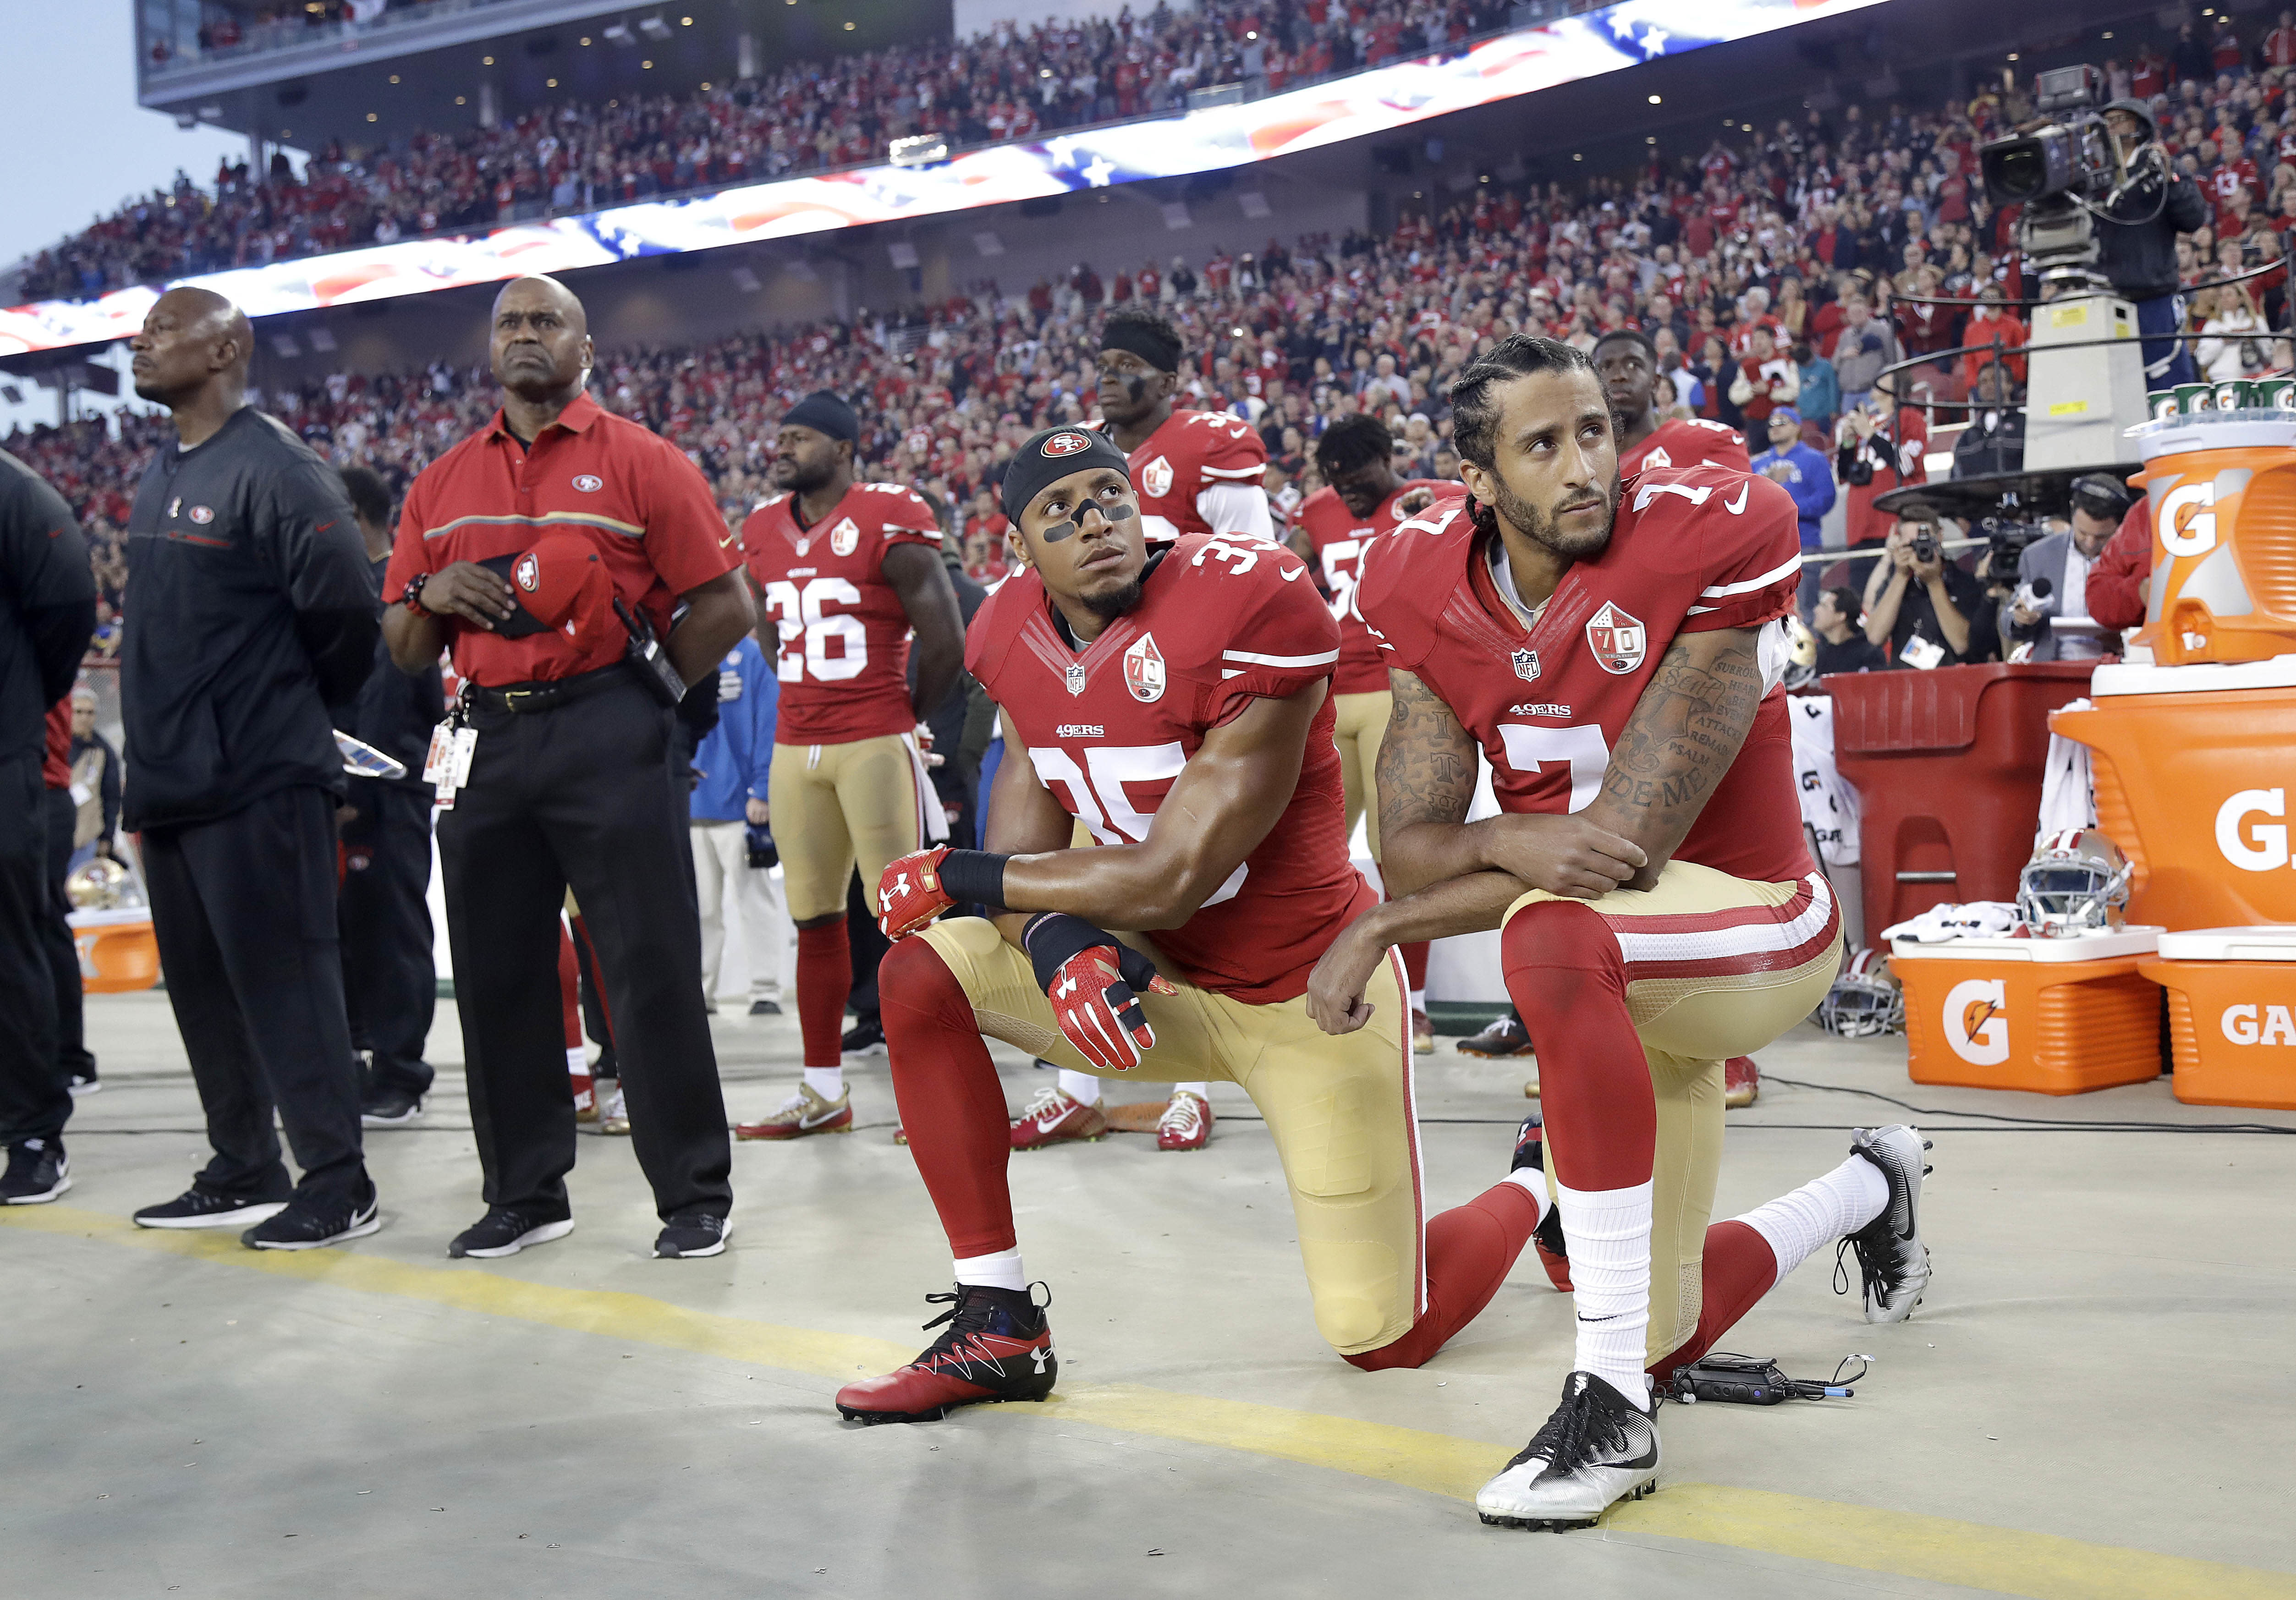 Richard Sherman: Players 'concerned' Eric Reid, who protested during anthem, still unsigned